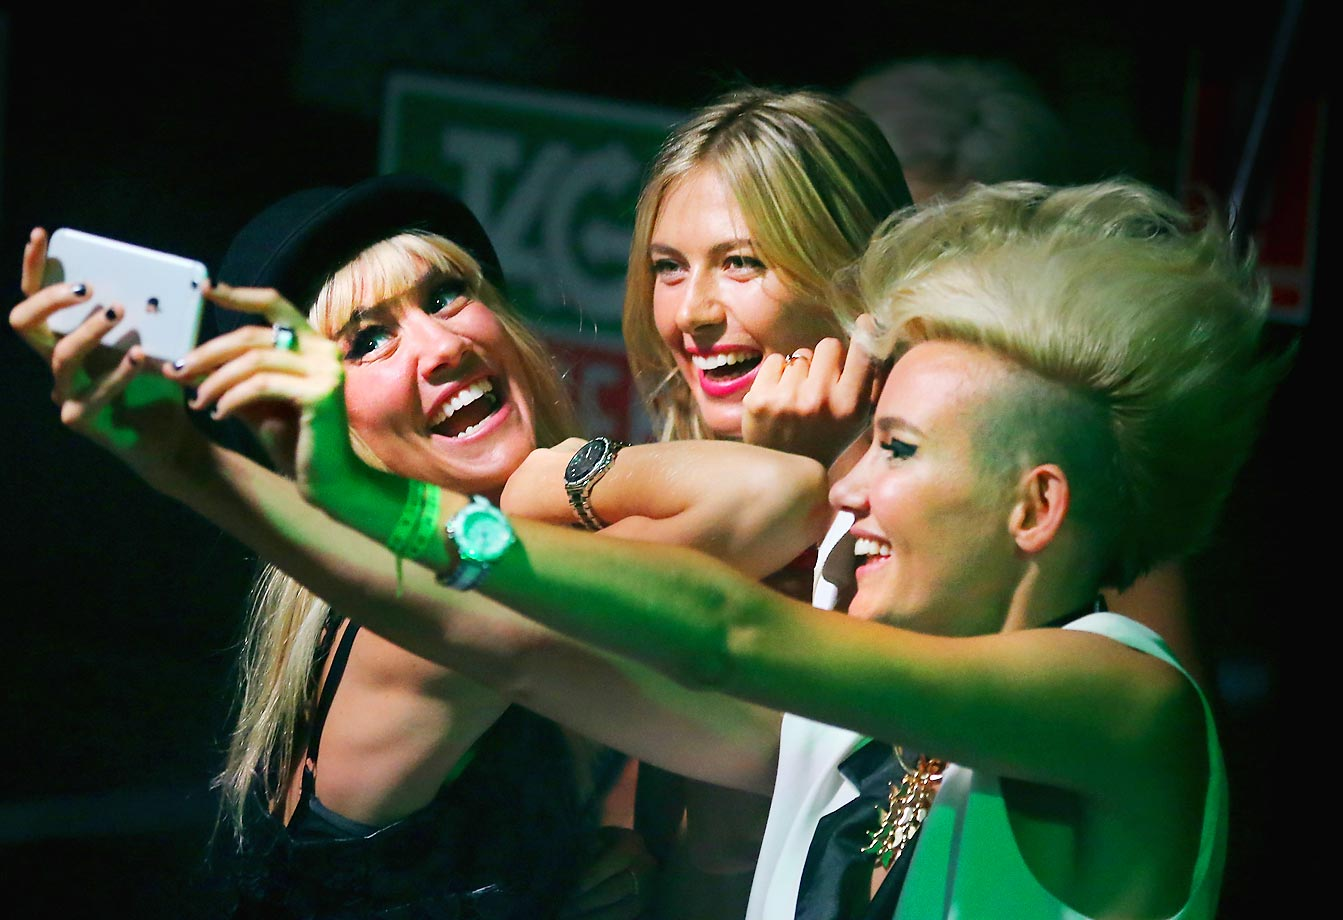 Maria Sharapova poses for a selfie with Miriam Nervo and Olivia Nervo before the Australian Open.